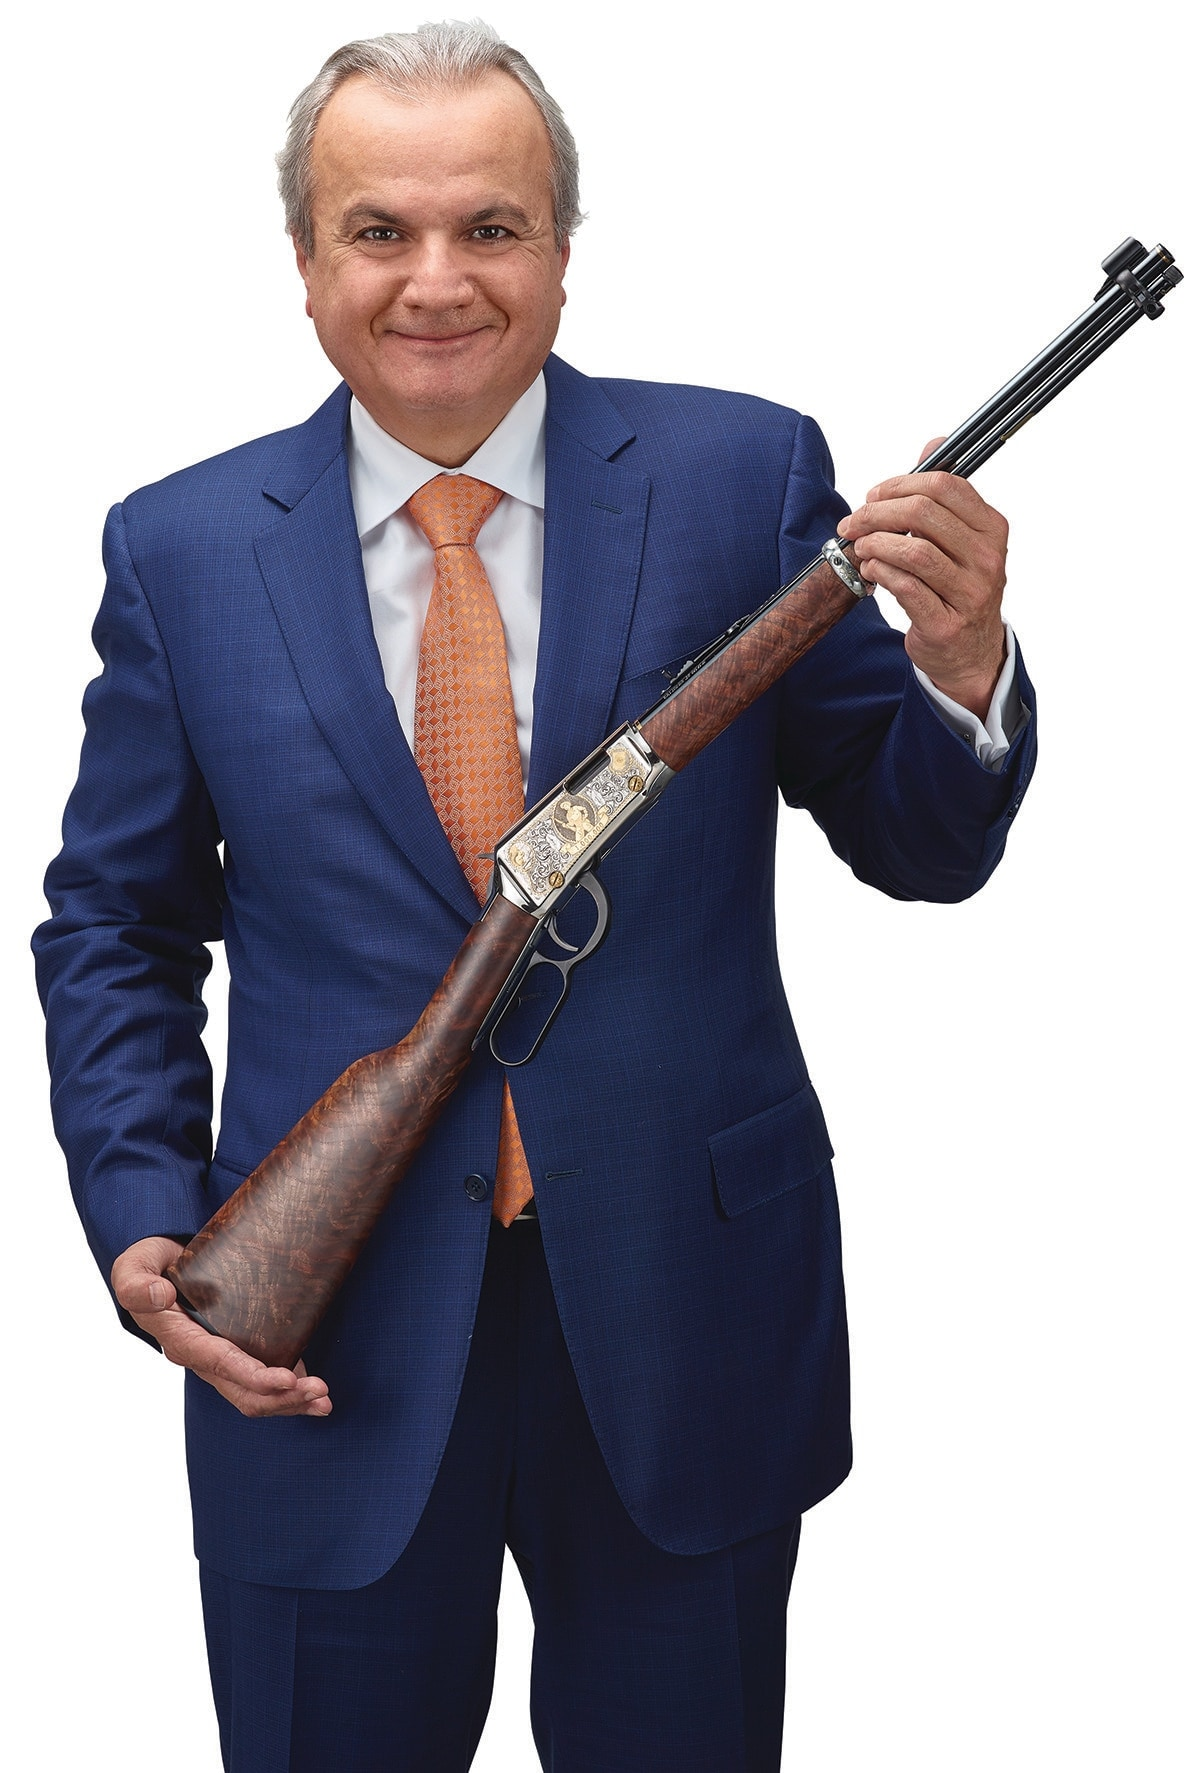 President of henry Repeating Arms ___ Imperato holds the one millionth rifle. (Photo: Henry Repeating Arms)